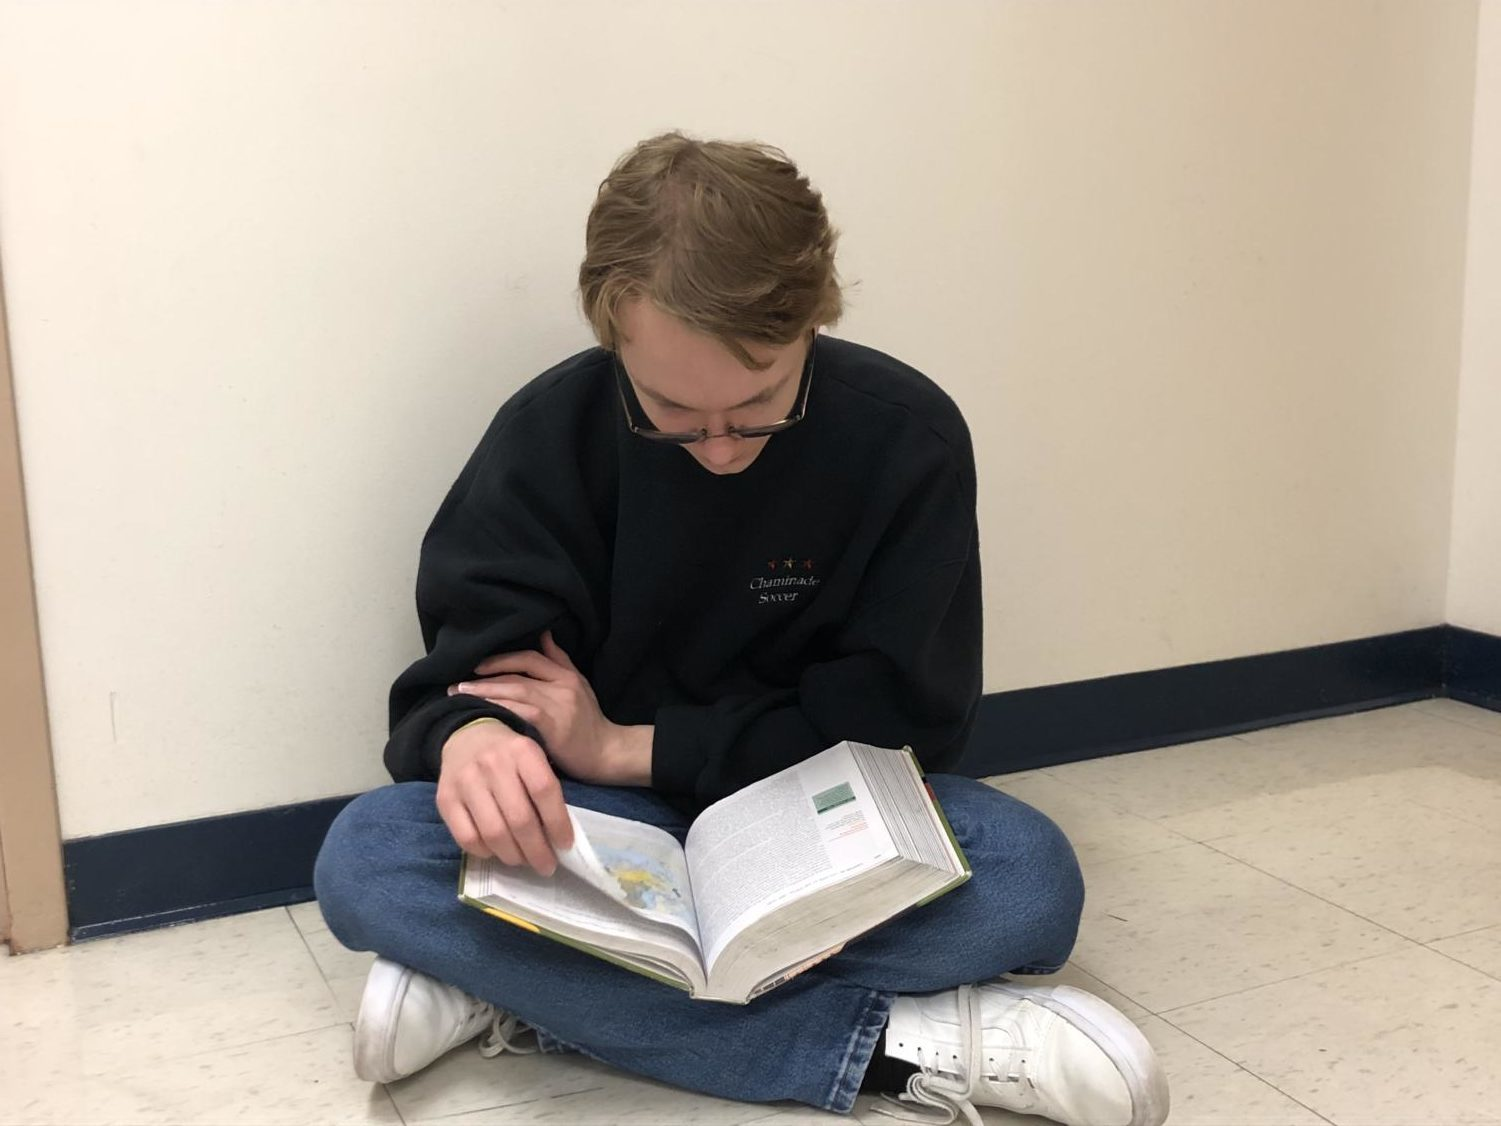 """Grant Hays, sophomore, reads his AP World textbook in preparation for the day's class. Hays said he has about thirty minutes to one hour of homework for AP World a night. """"Keeping up with reading assignments is really important and it makes the class more manageable,"""" Hays said. """"You can always rely on your notes if you ever get behind."""""""